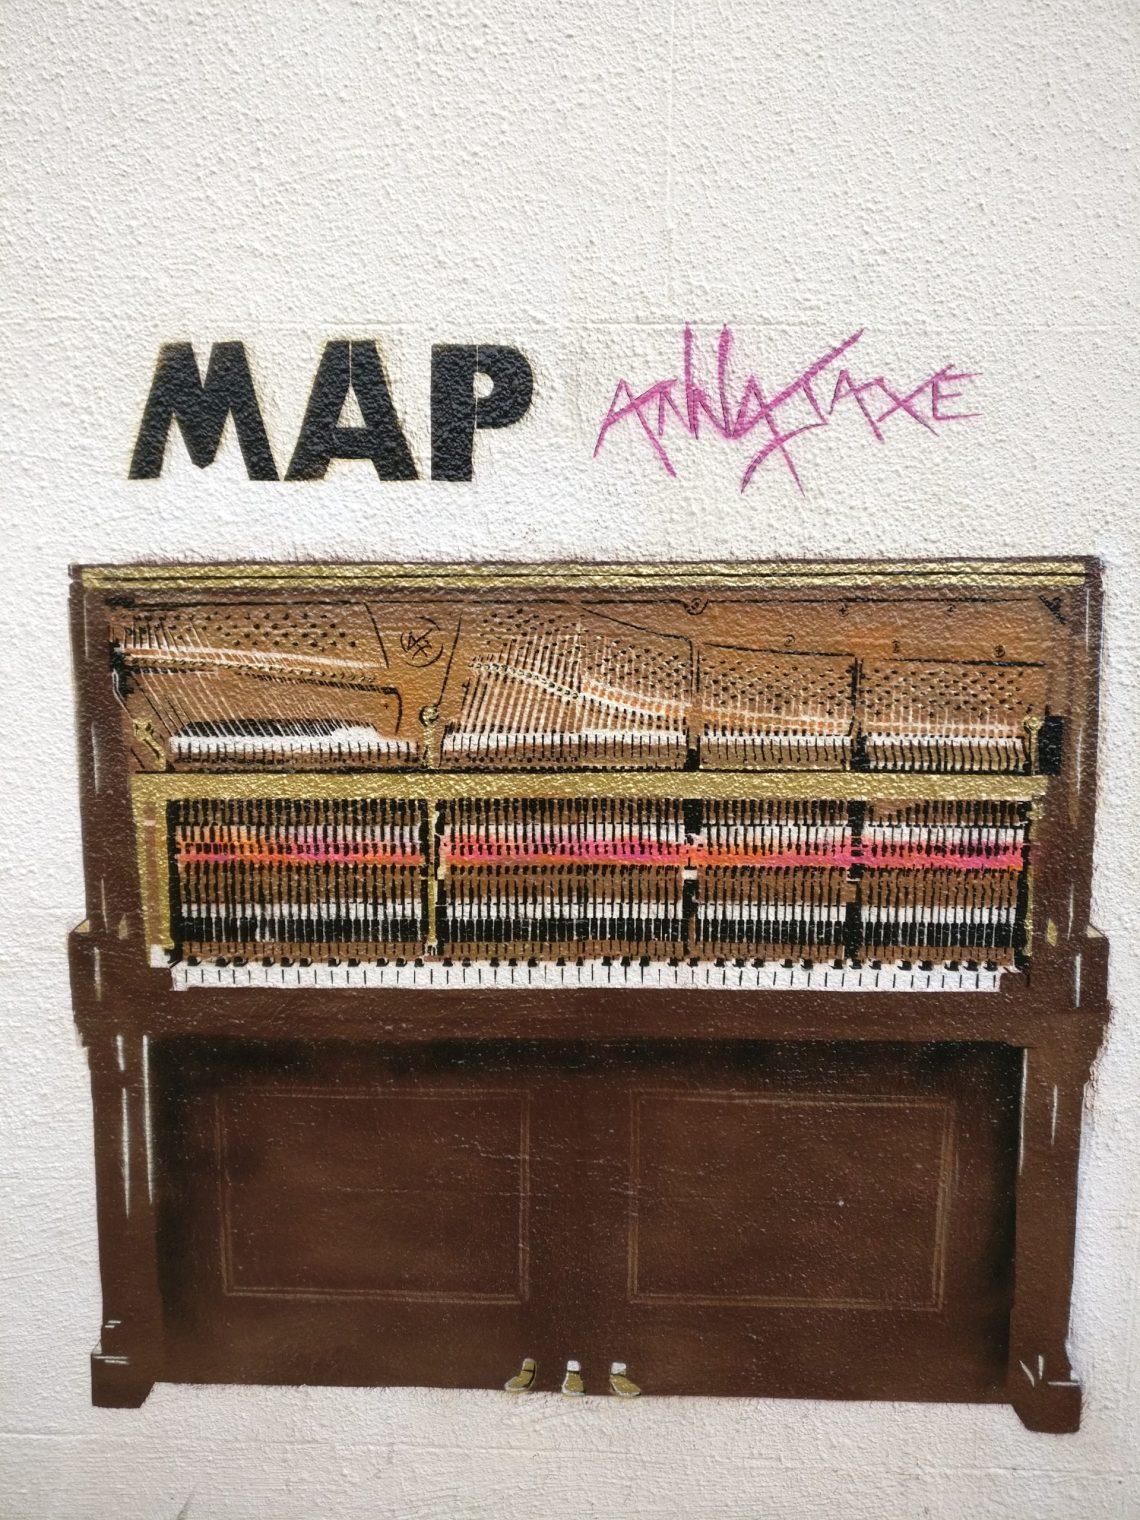 A 12 layer stencil of a piano by Anna Jaxe outside the MAP studio is Kentish Town